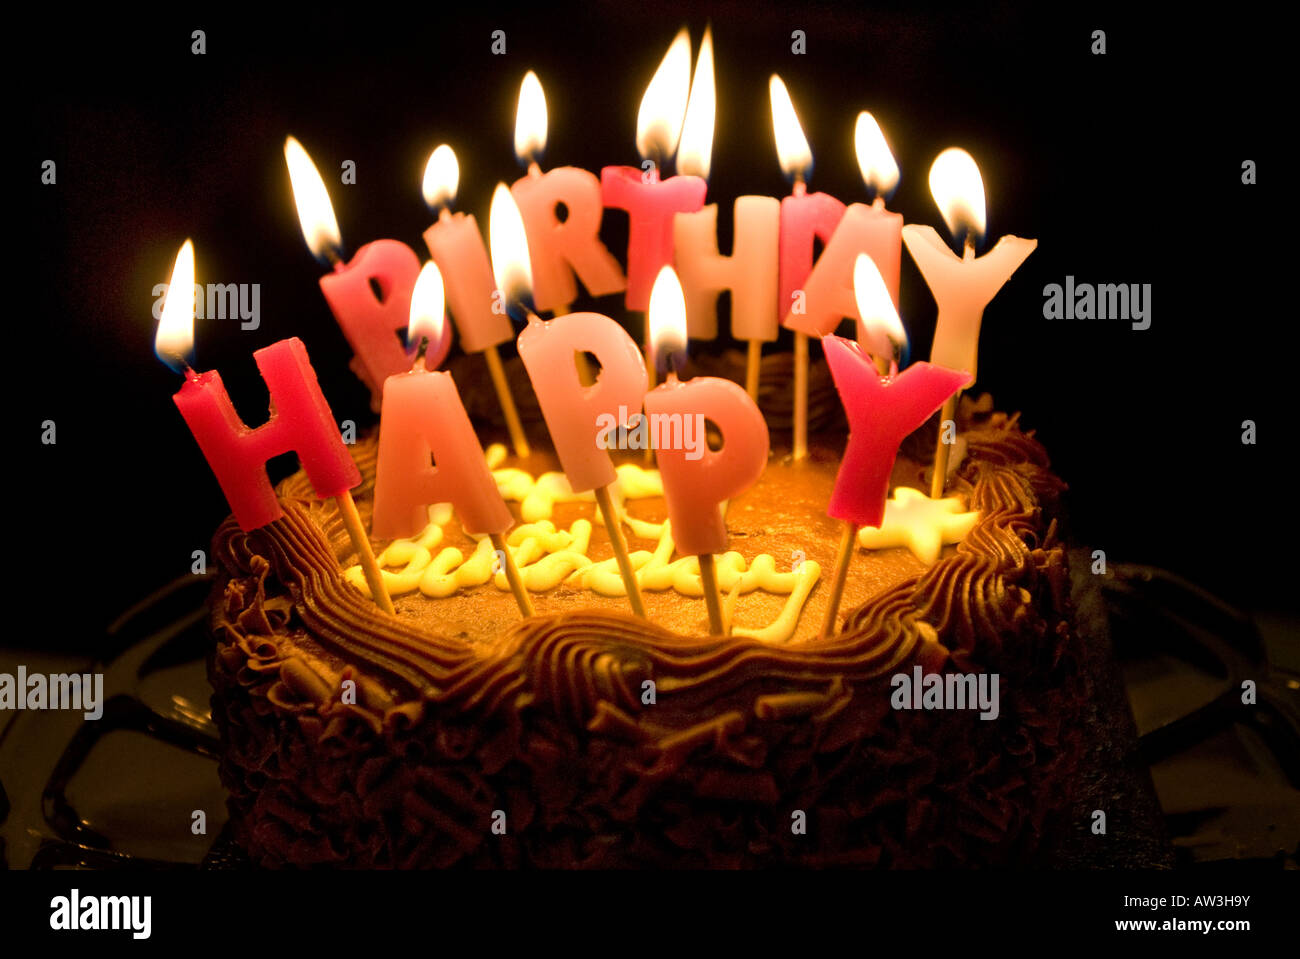 Lighted candles saying Happy Birthday on a chocolate cake Stock